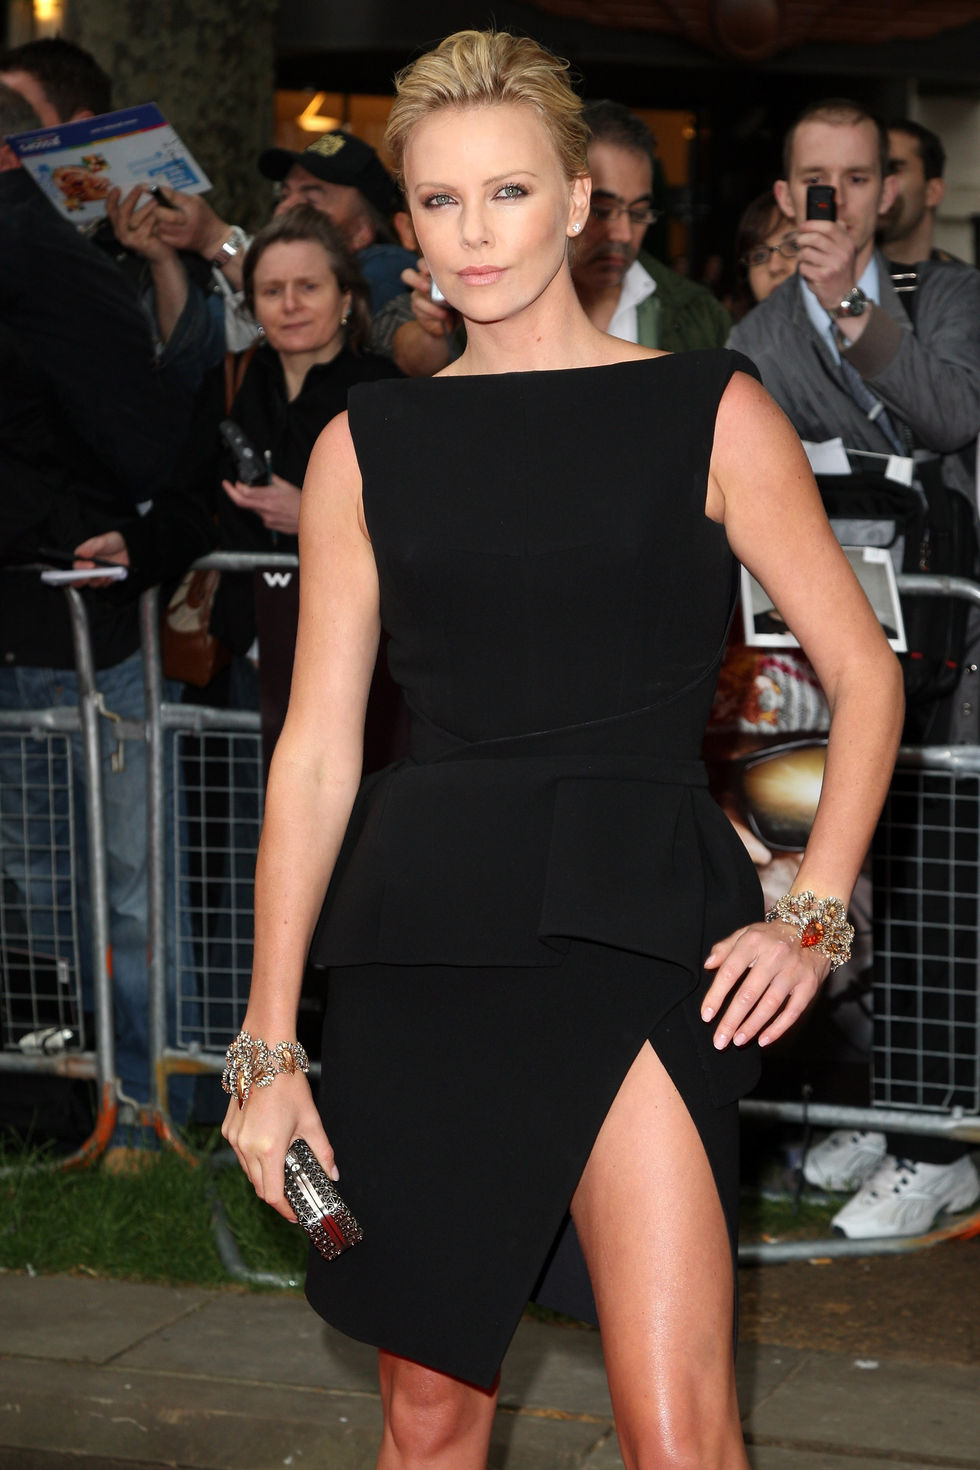 charlize-theron-hancock-uk-premiere-in-london-07